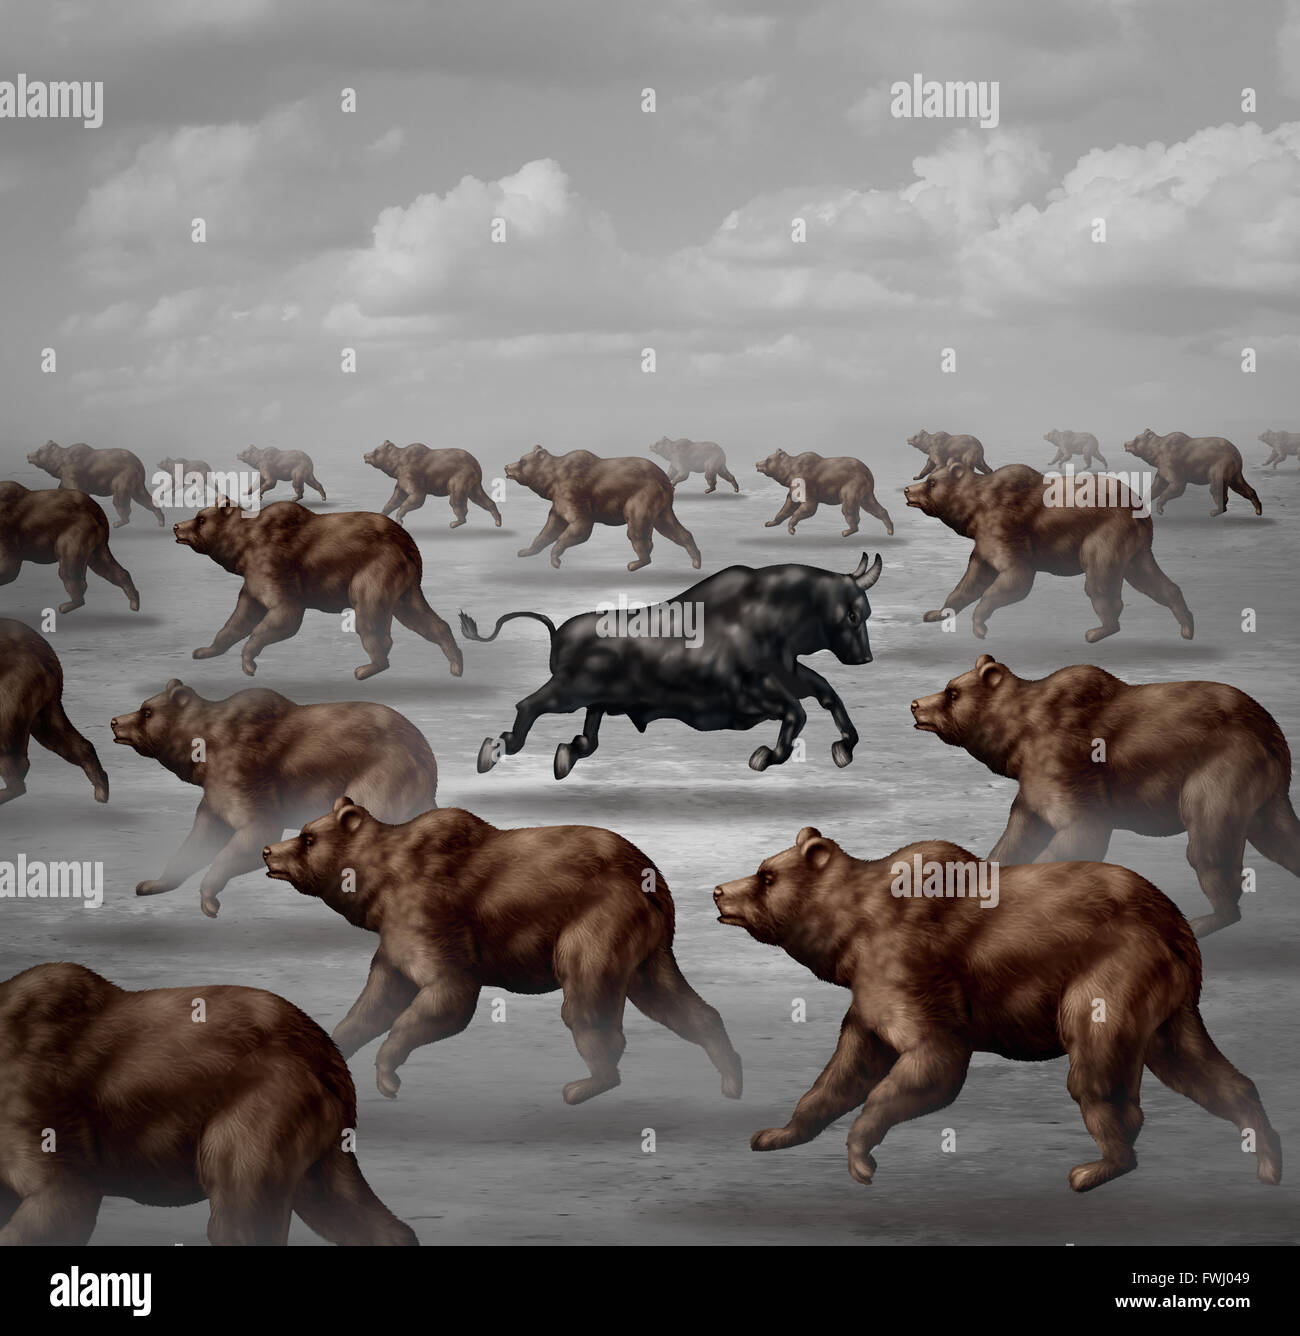 Stock market positive forecast financial concept and contrarian individual financial symbol as a courageous bull - Stock Image